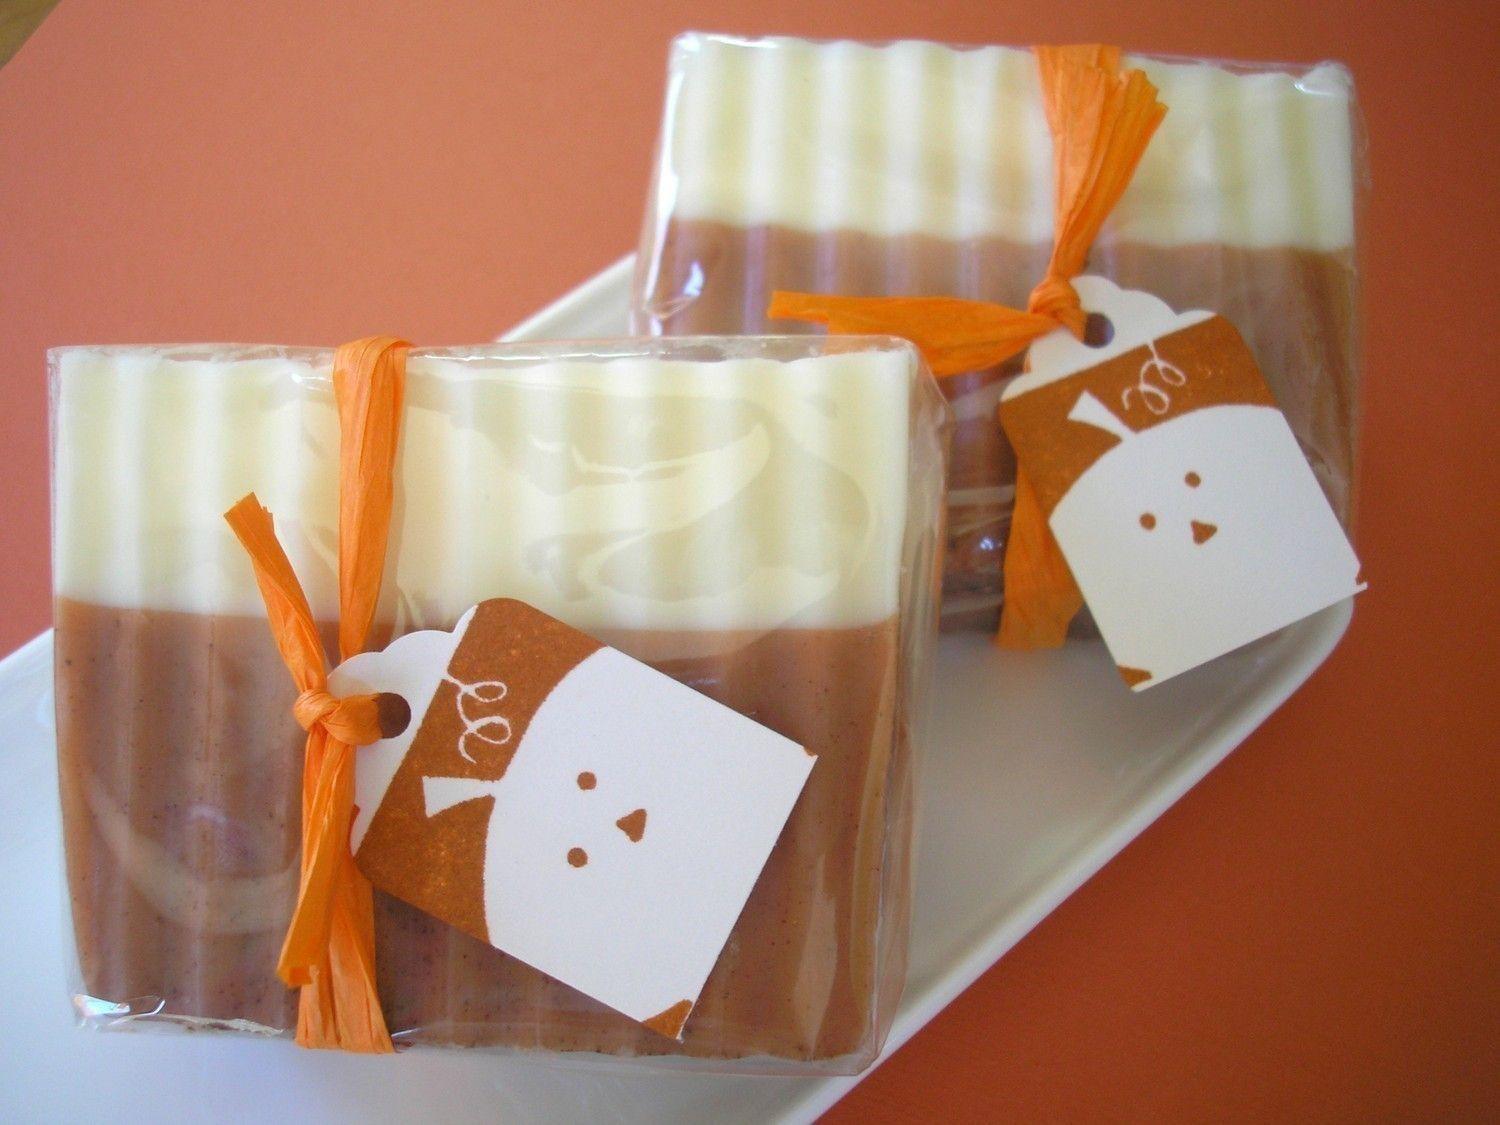 Soap - Spiced Pumpkin Pie - Halloween Fall and Thanksgiving. $5.00, via Etsy.